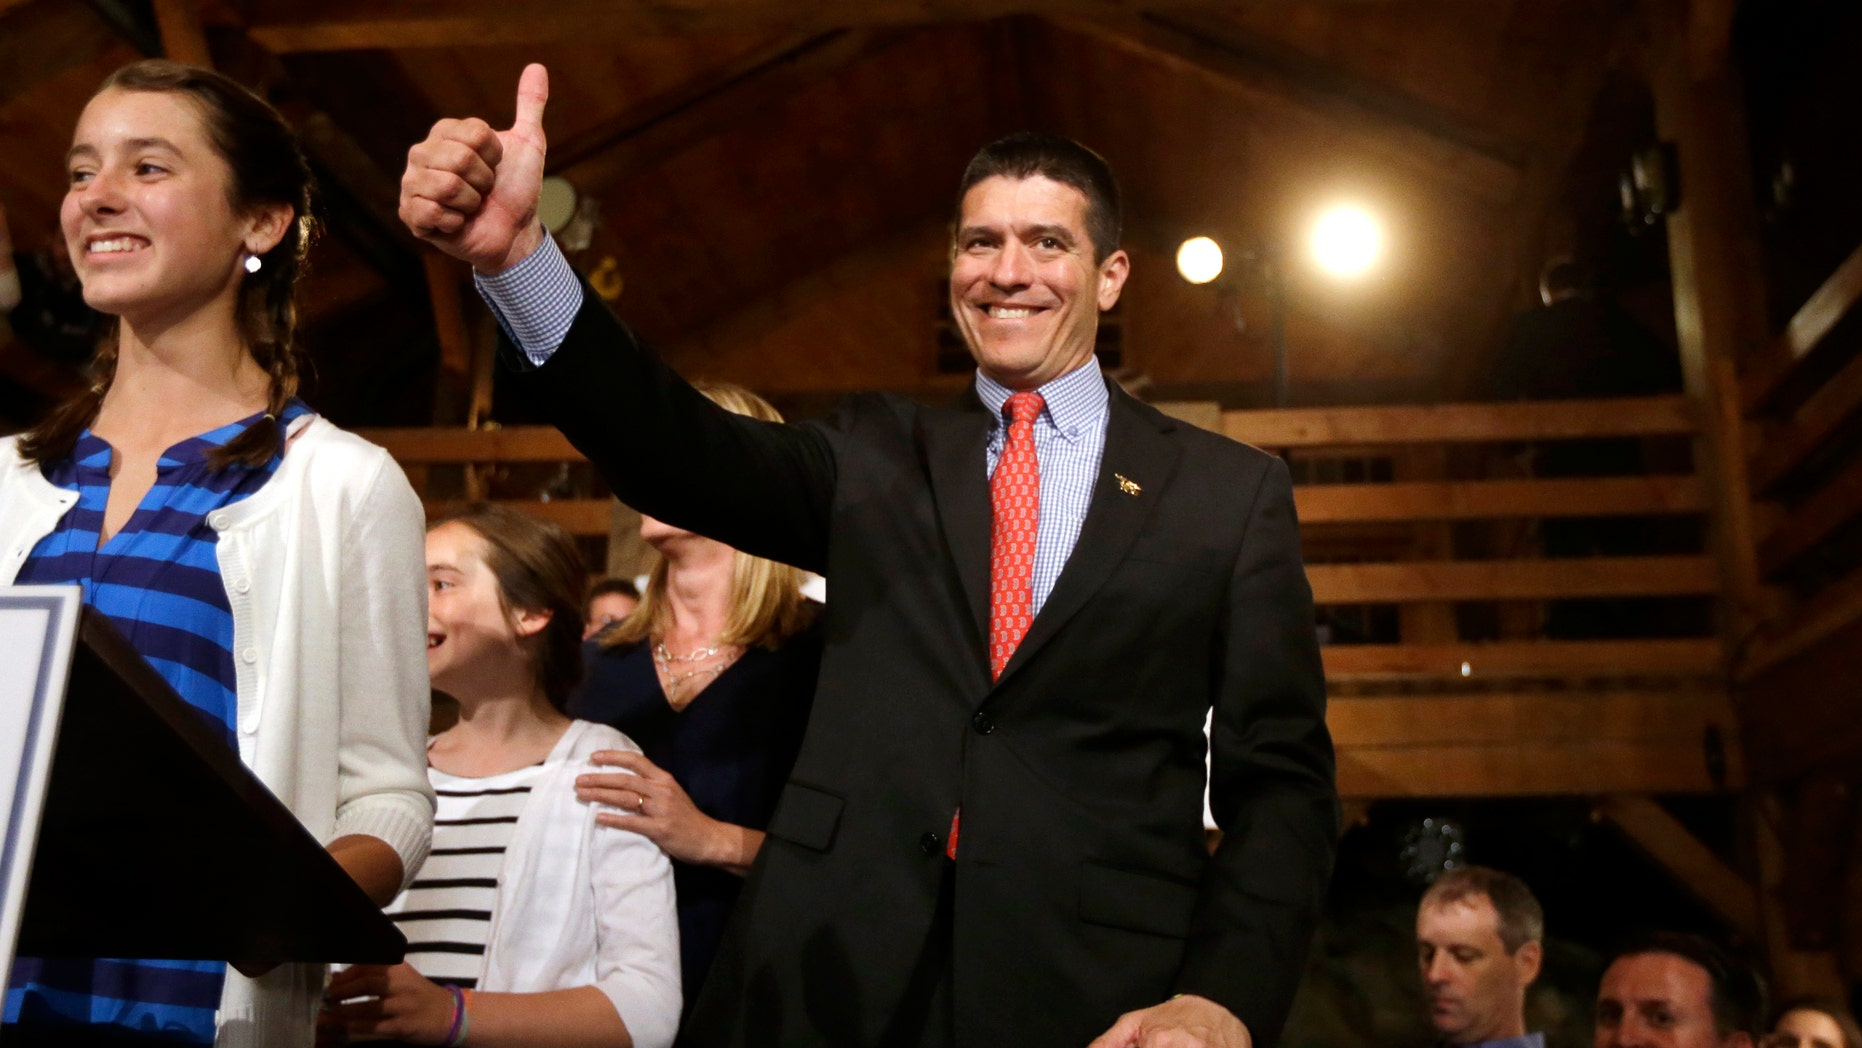 Republican candidate for the U.S. Senate Gabriel Gomez, center, gives a thumbs up as he takes to the stage next to his daughter Olivia, 13, left, before addressing an audience with a victory speech at a watch party, in Cohasset, Mass., Tuesday, April 30, 2013. Gomez won his primary bid for the Republican nomination to contest a U.S. Senate seat, defeating Republican hopefuls Michael Sullivan and Dan Winslow. (AP Photo/Steven Senne)